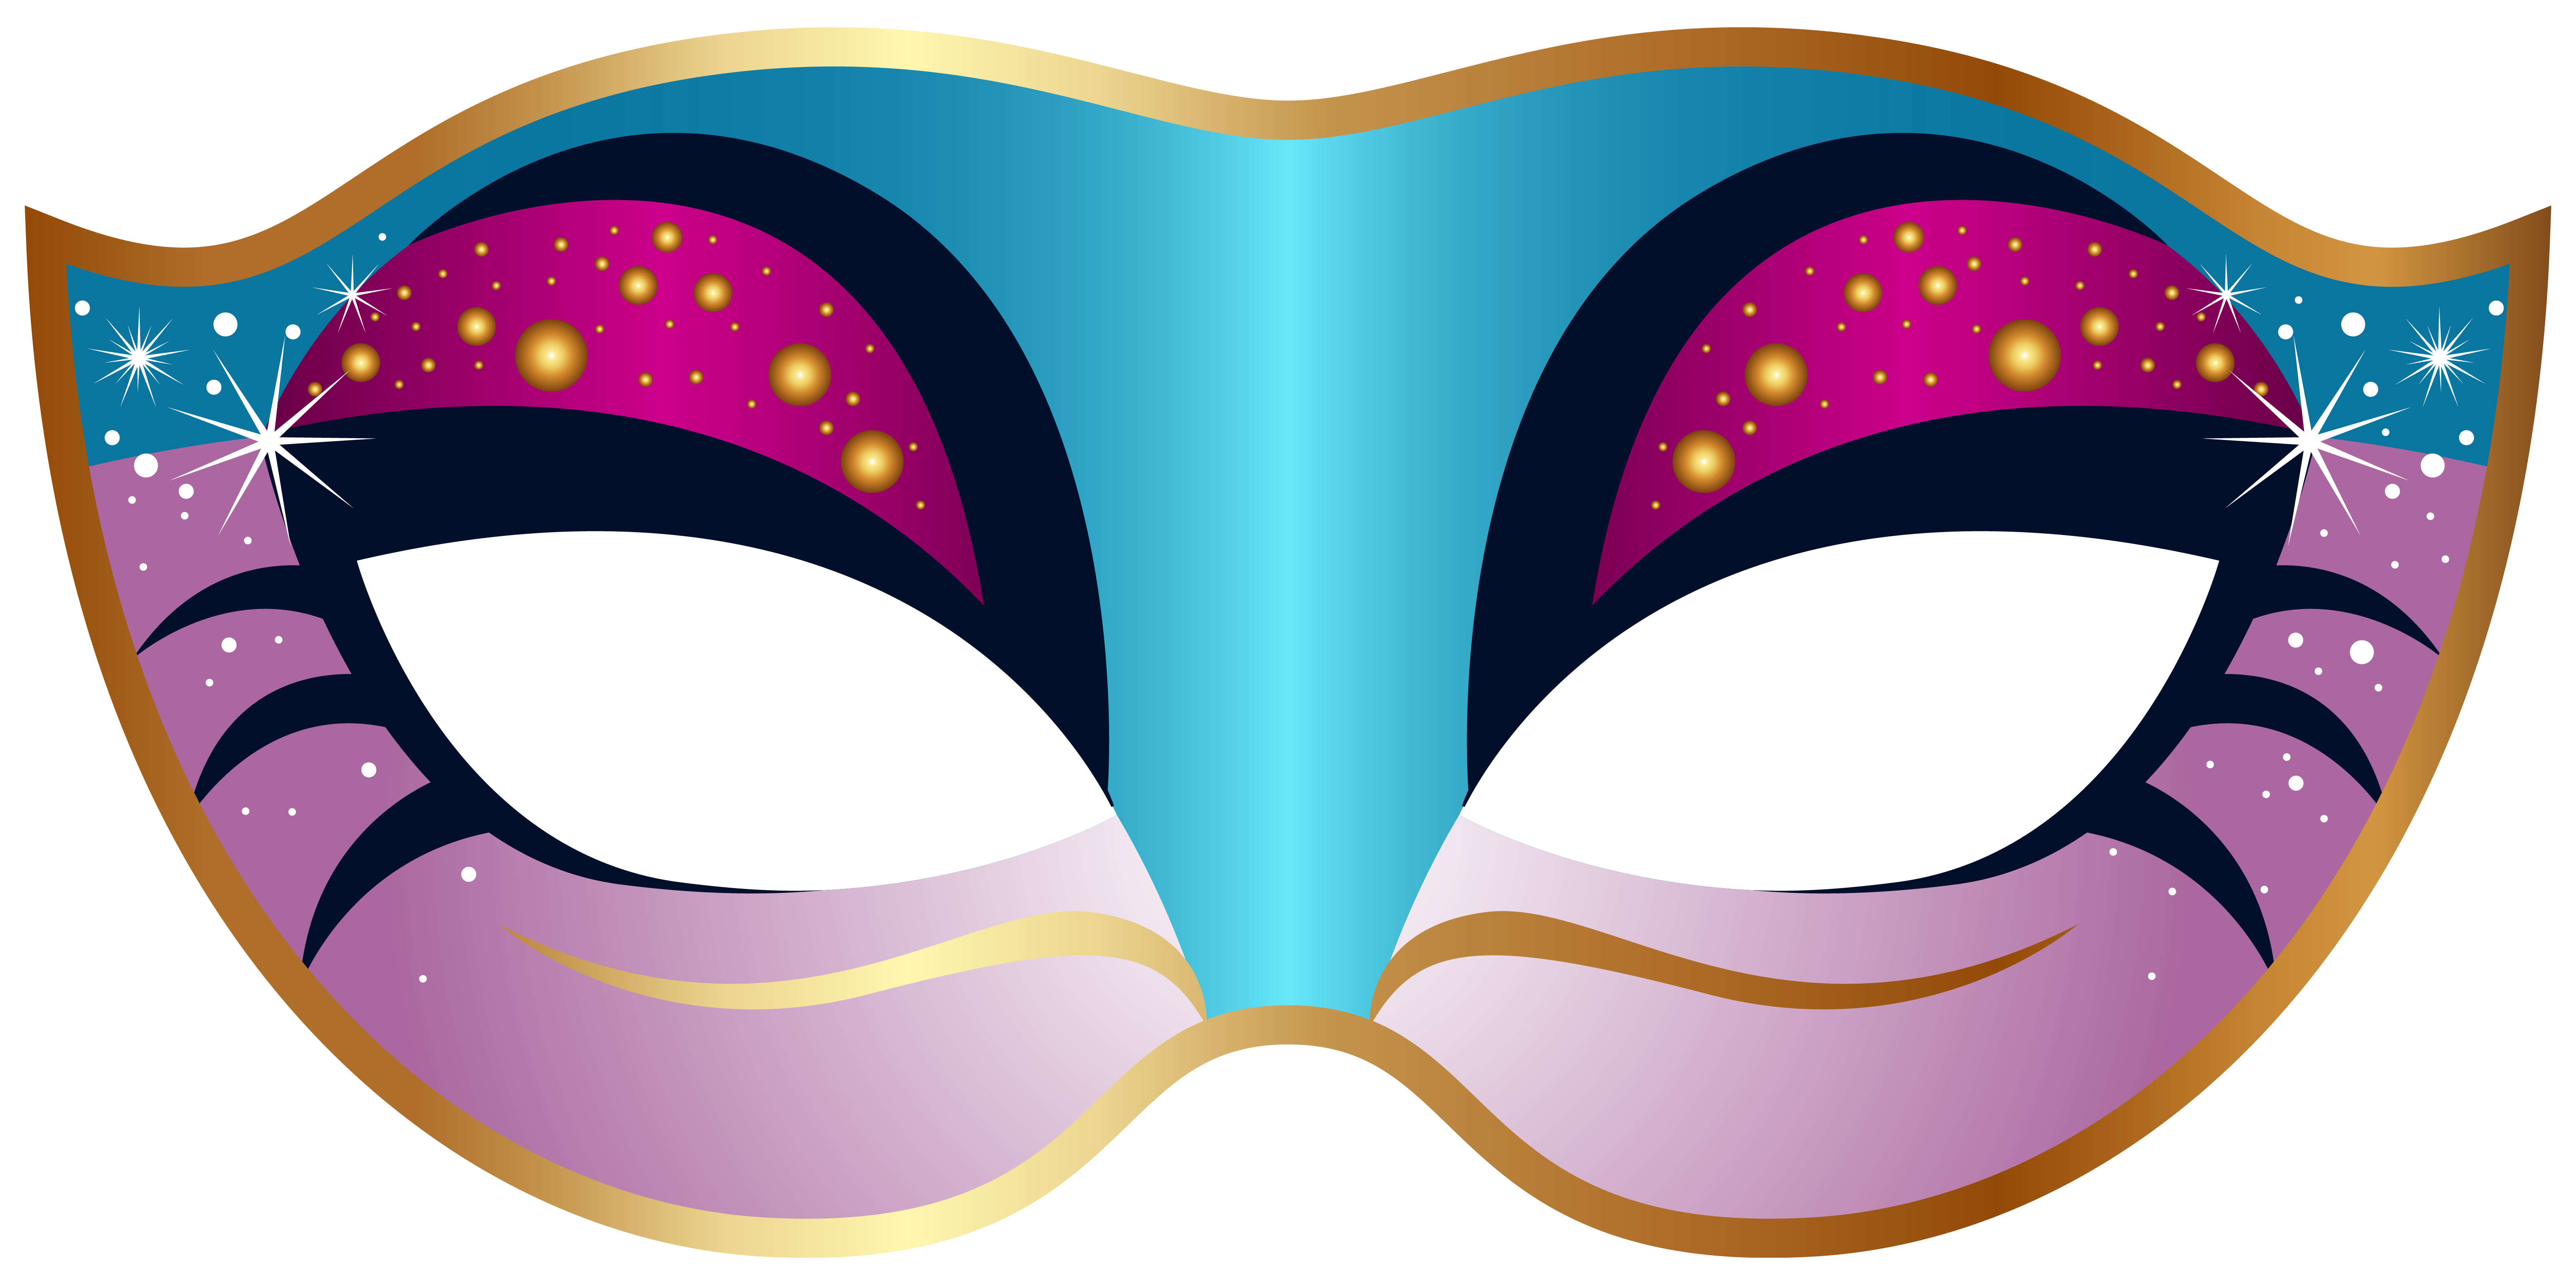 6230x3108 Blue And Pink Carnival Mask Png Clip Art Imageu200b Gallery